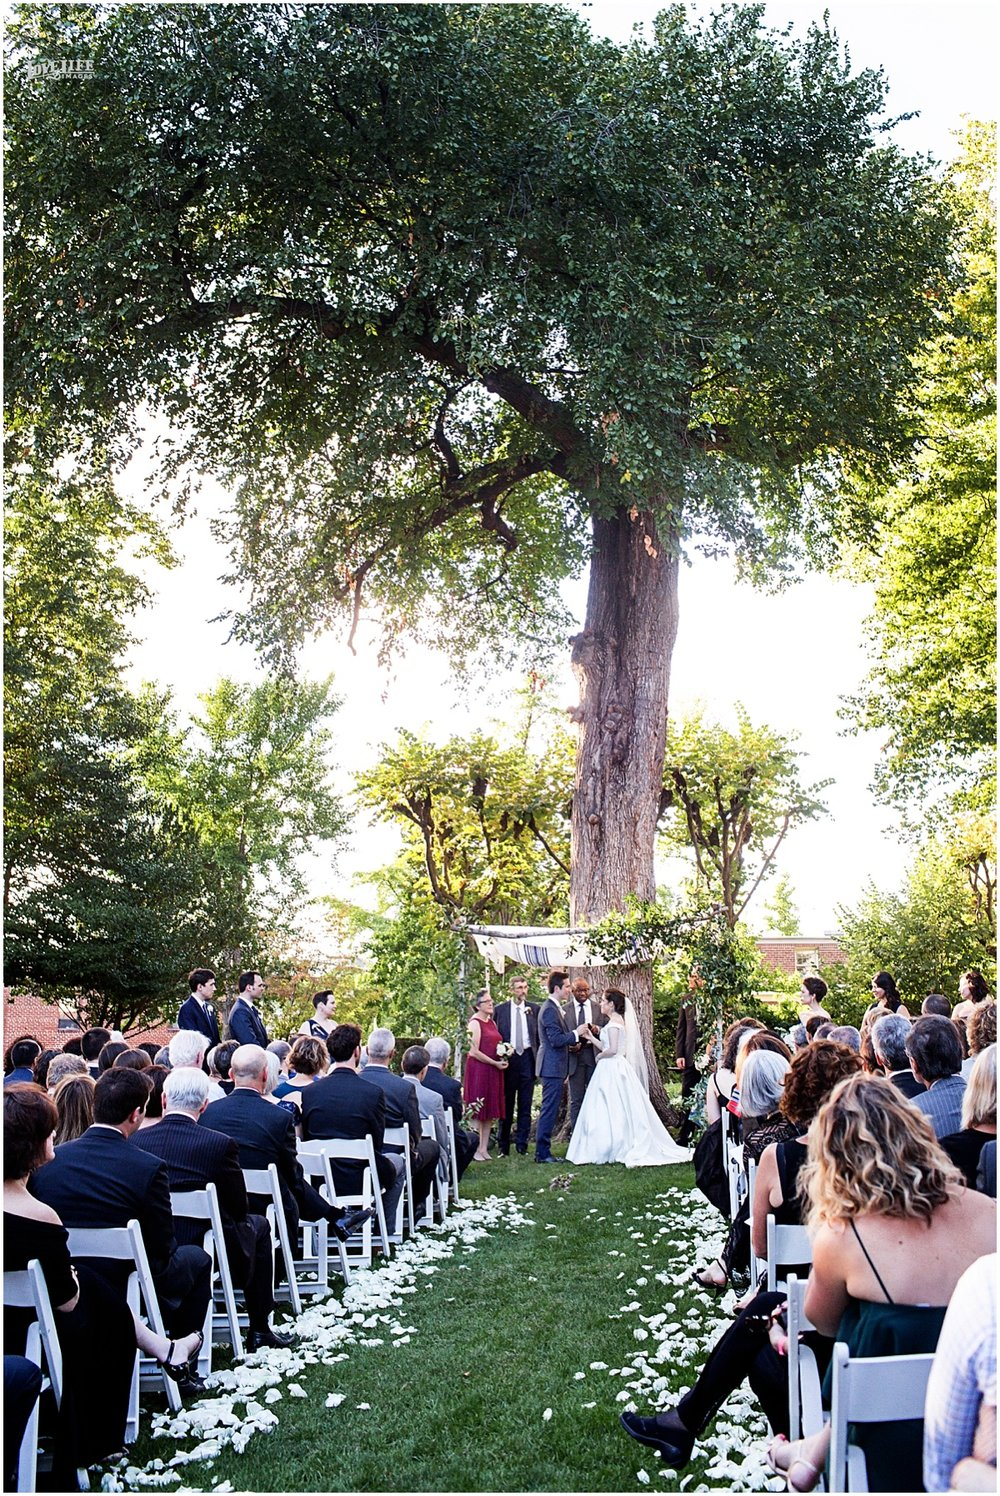 Meridian House Wedding Ceremony Photo.JPG